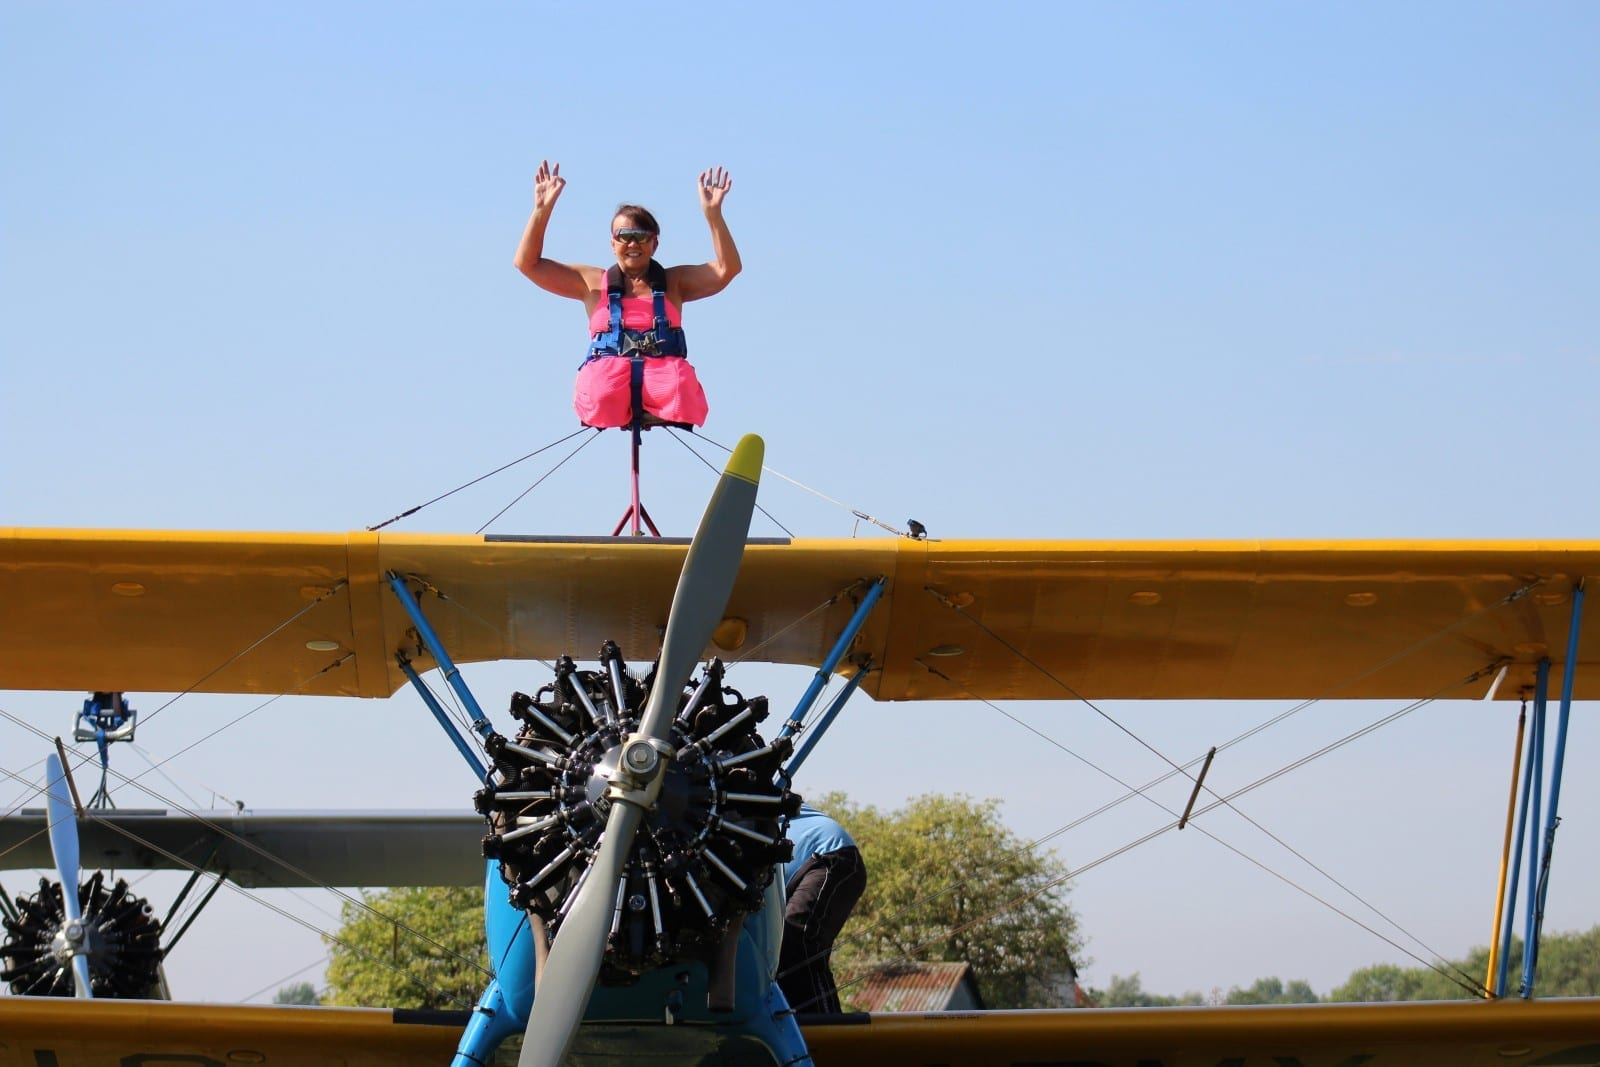 A 57-Year-Old Adrenaline Junkie Completes 1500ft Wing Walk - Despite Having No Legs